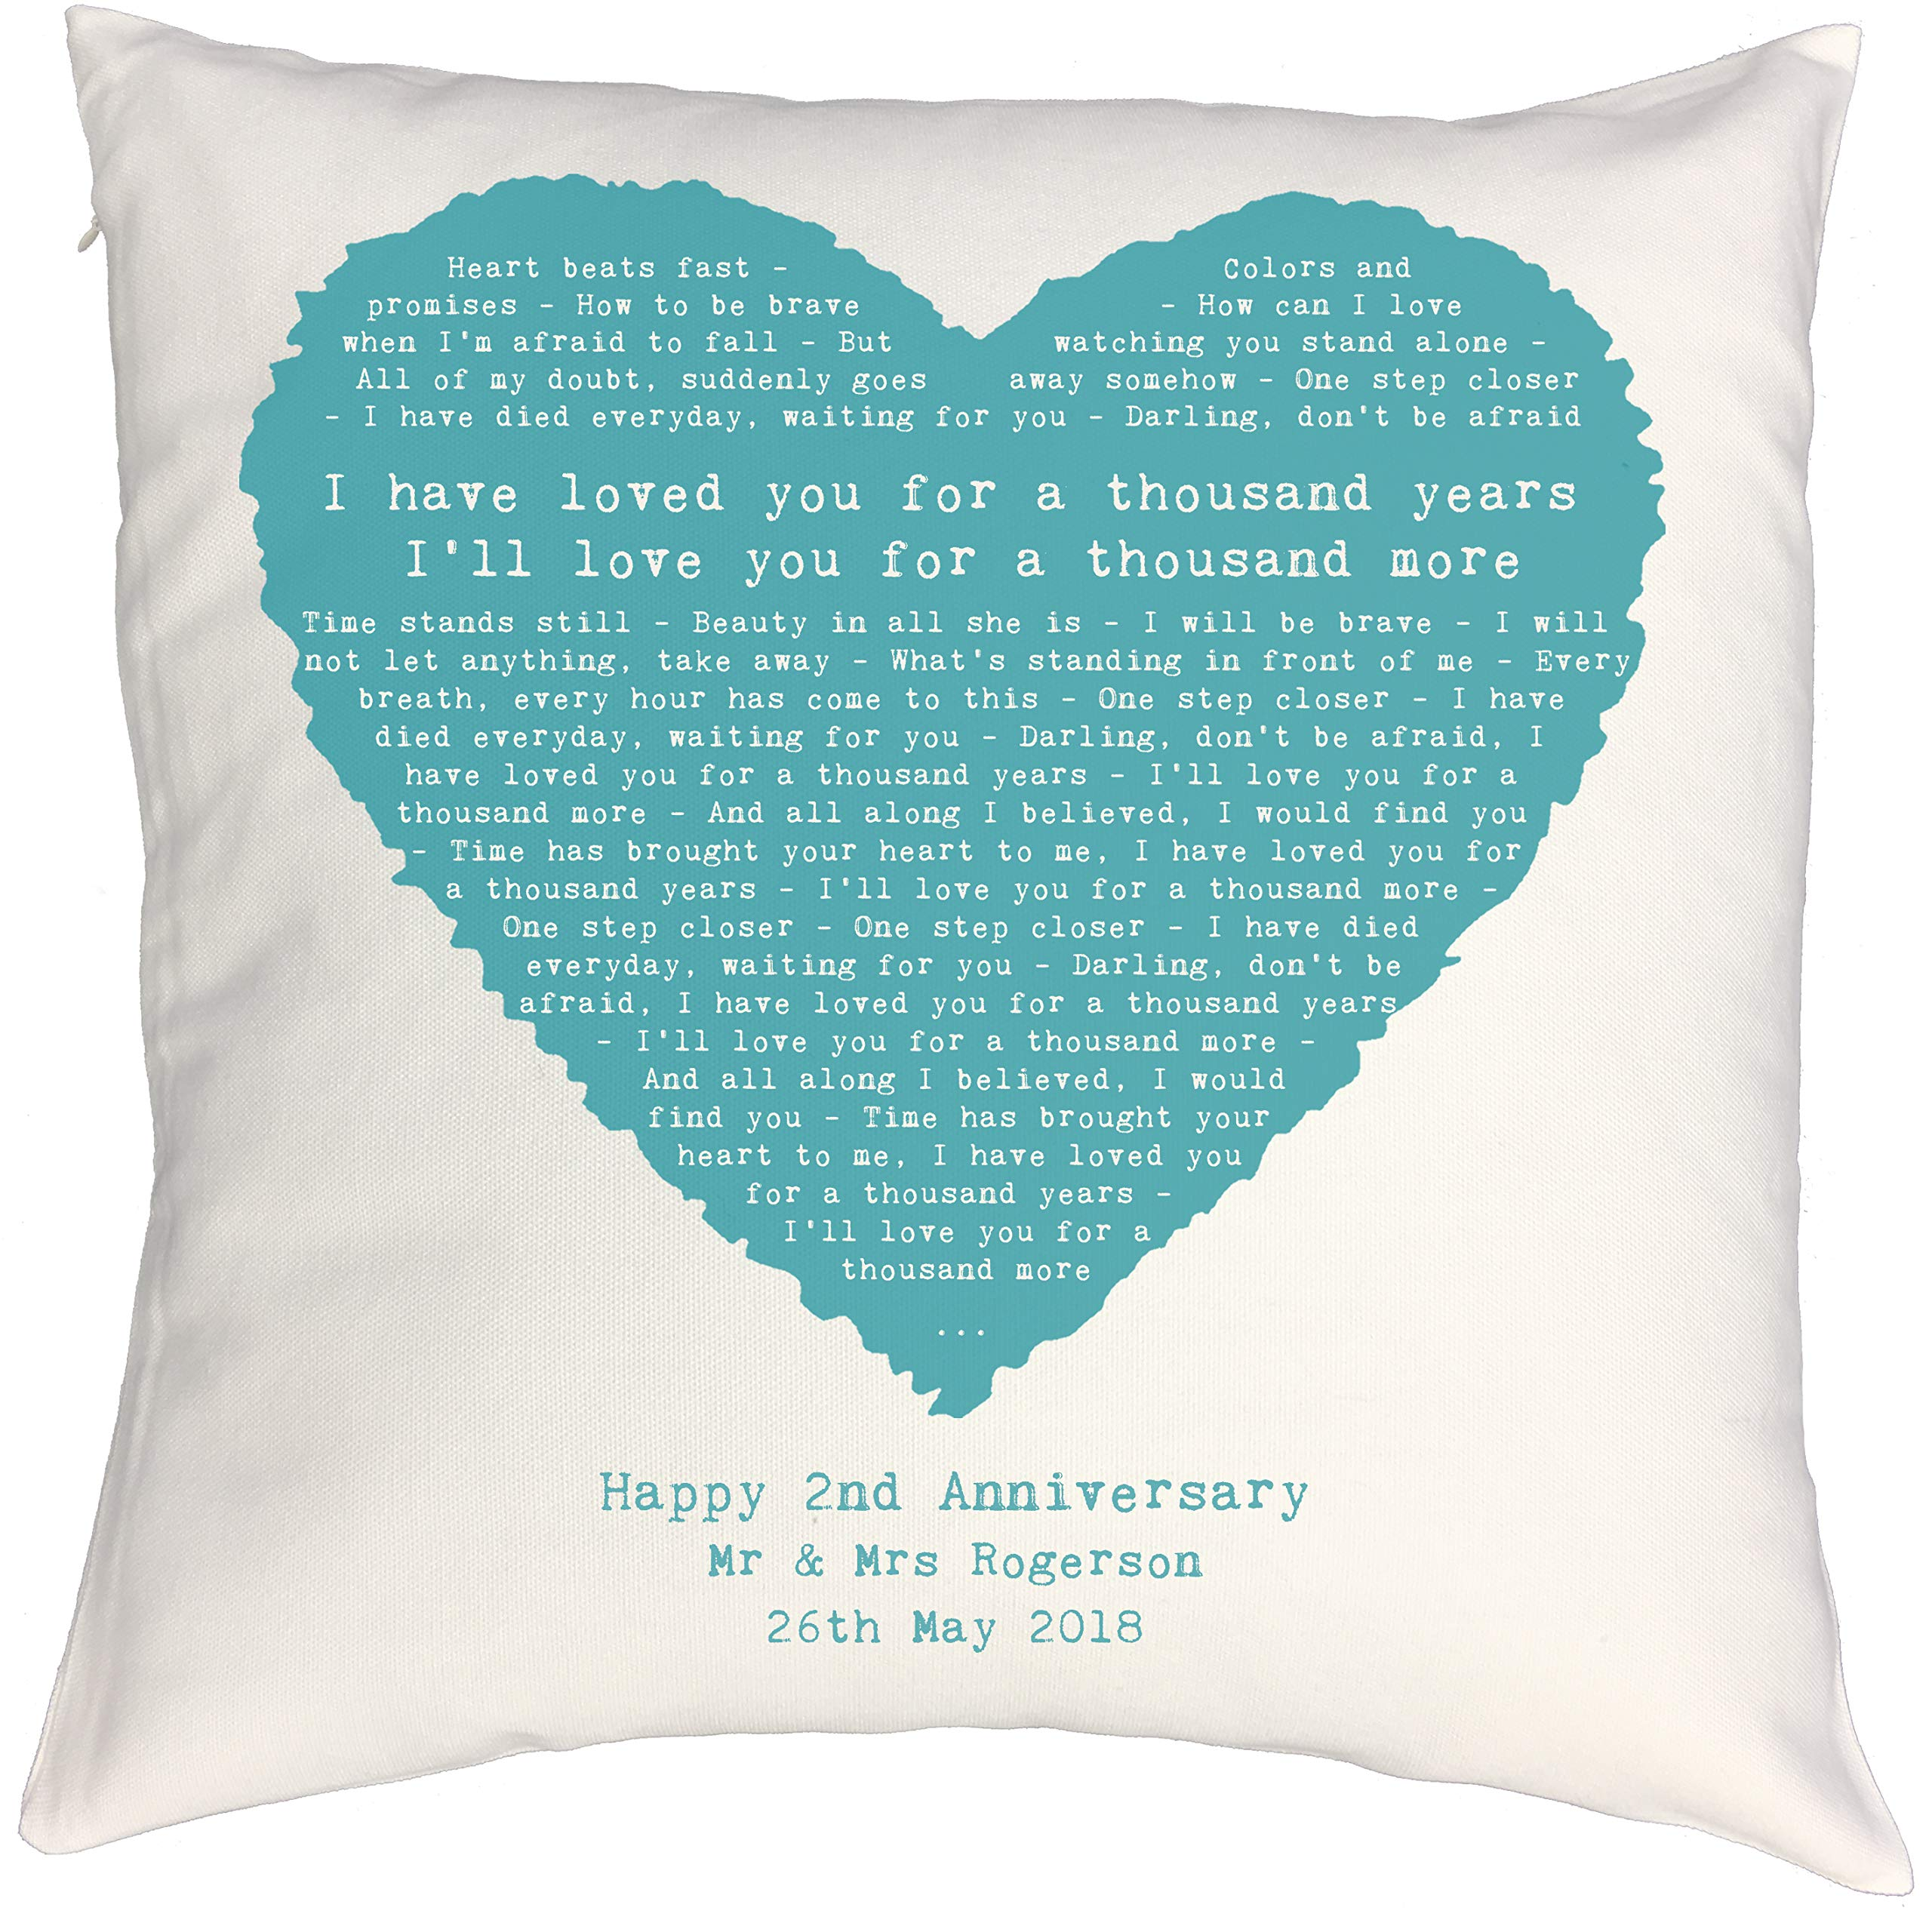 Not Just A Print - Heart Shaped Personalised Song Lyrics Cushion (Christina Perri - A Thousand Years, Twilight Theme)